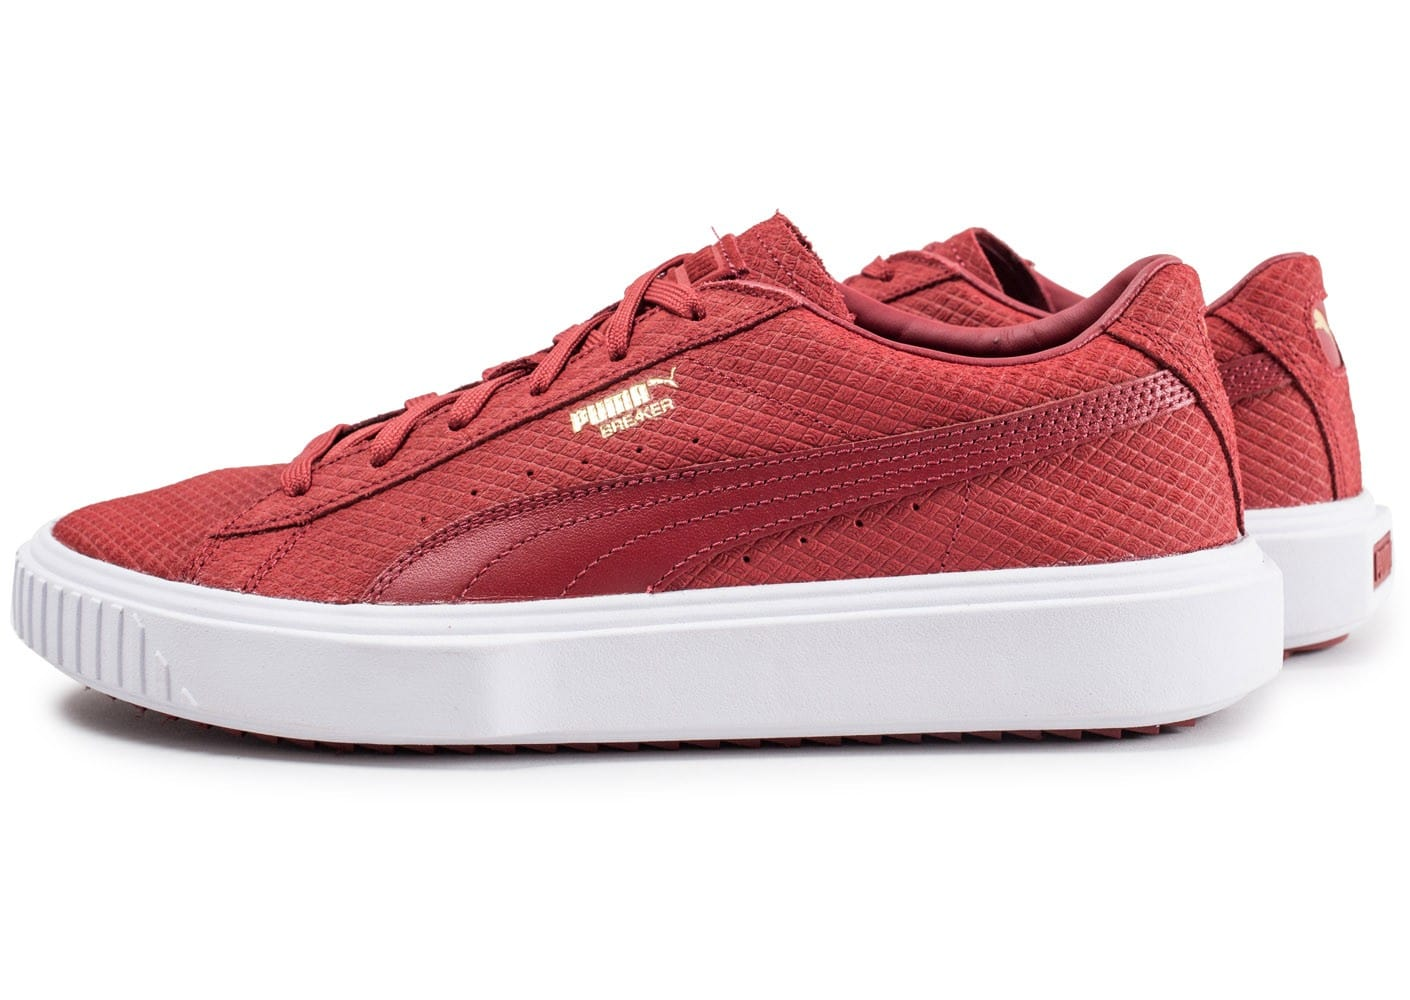 Chaussures Puma Homme Baskets Breaker Rouge Chausport dxeBrCoW